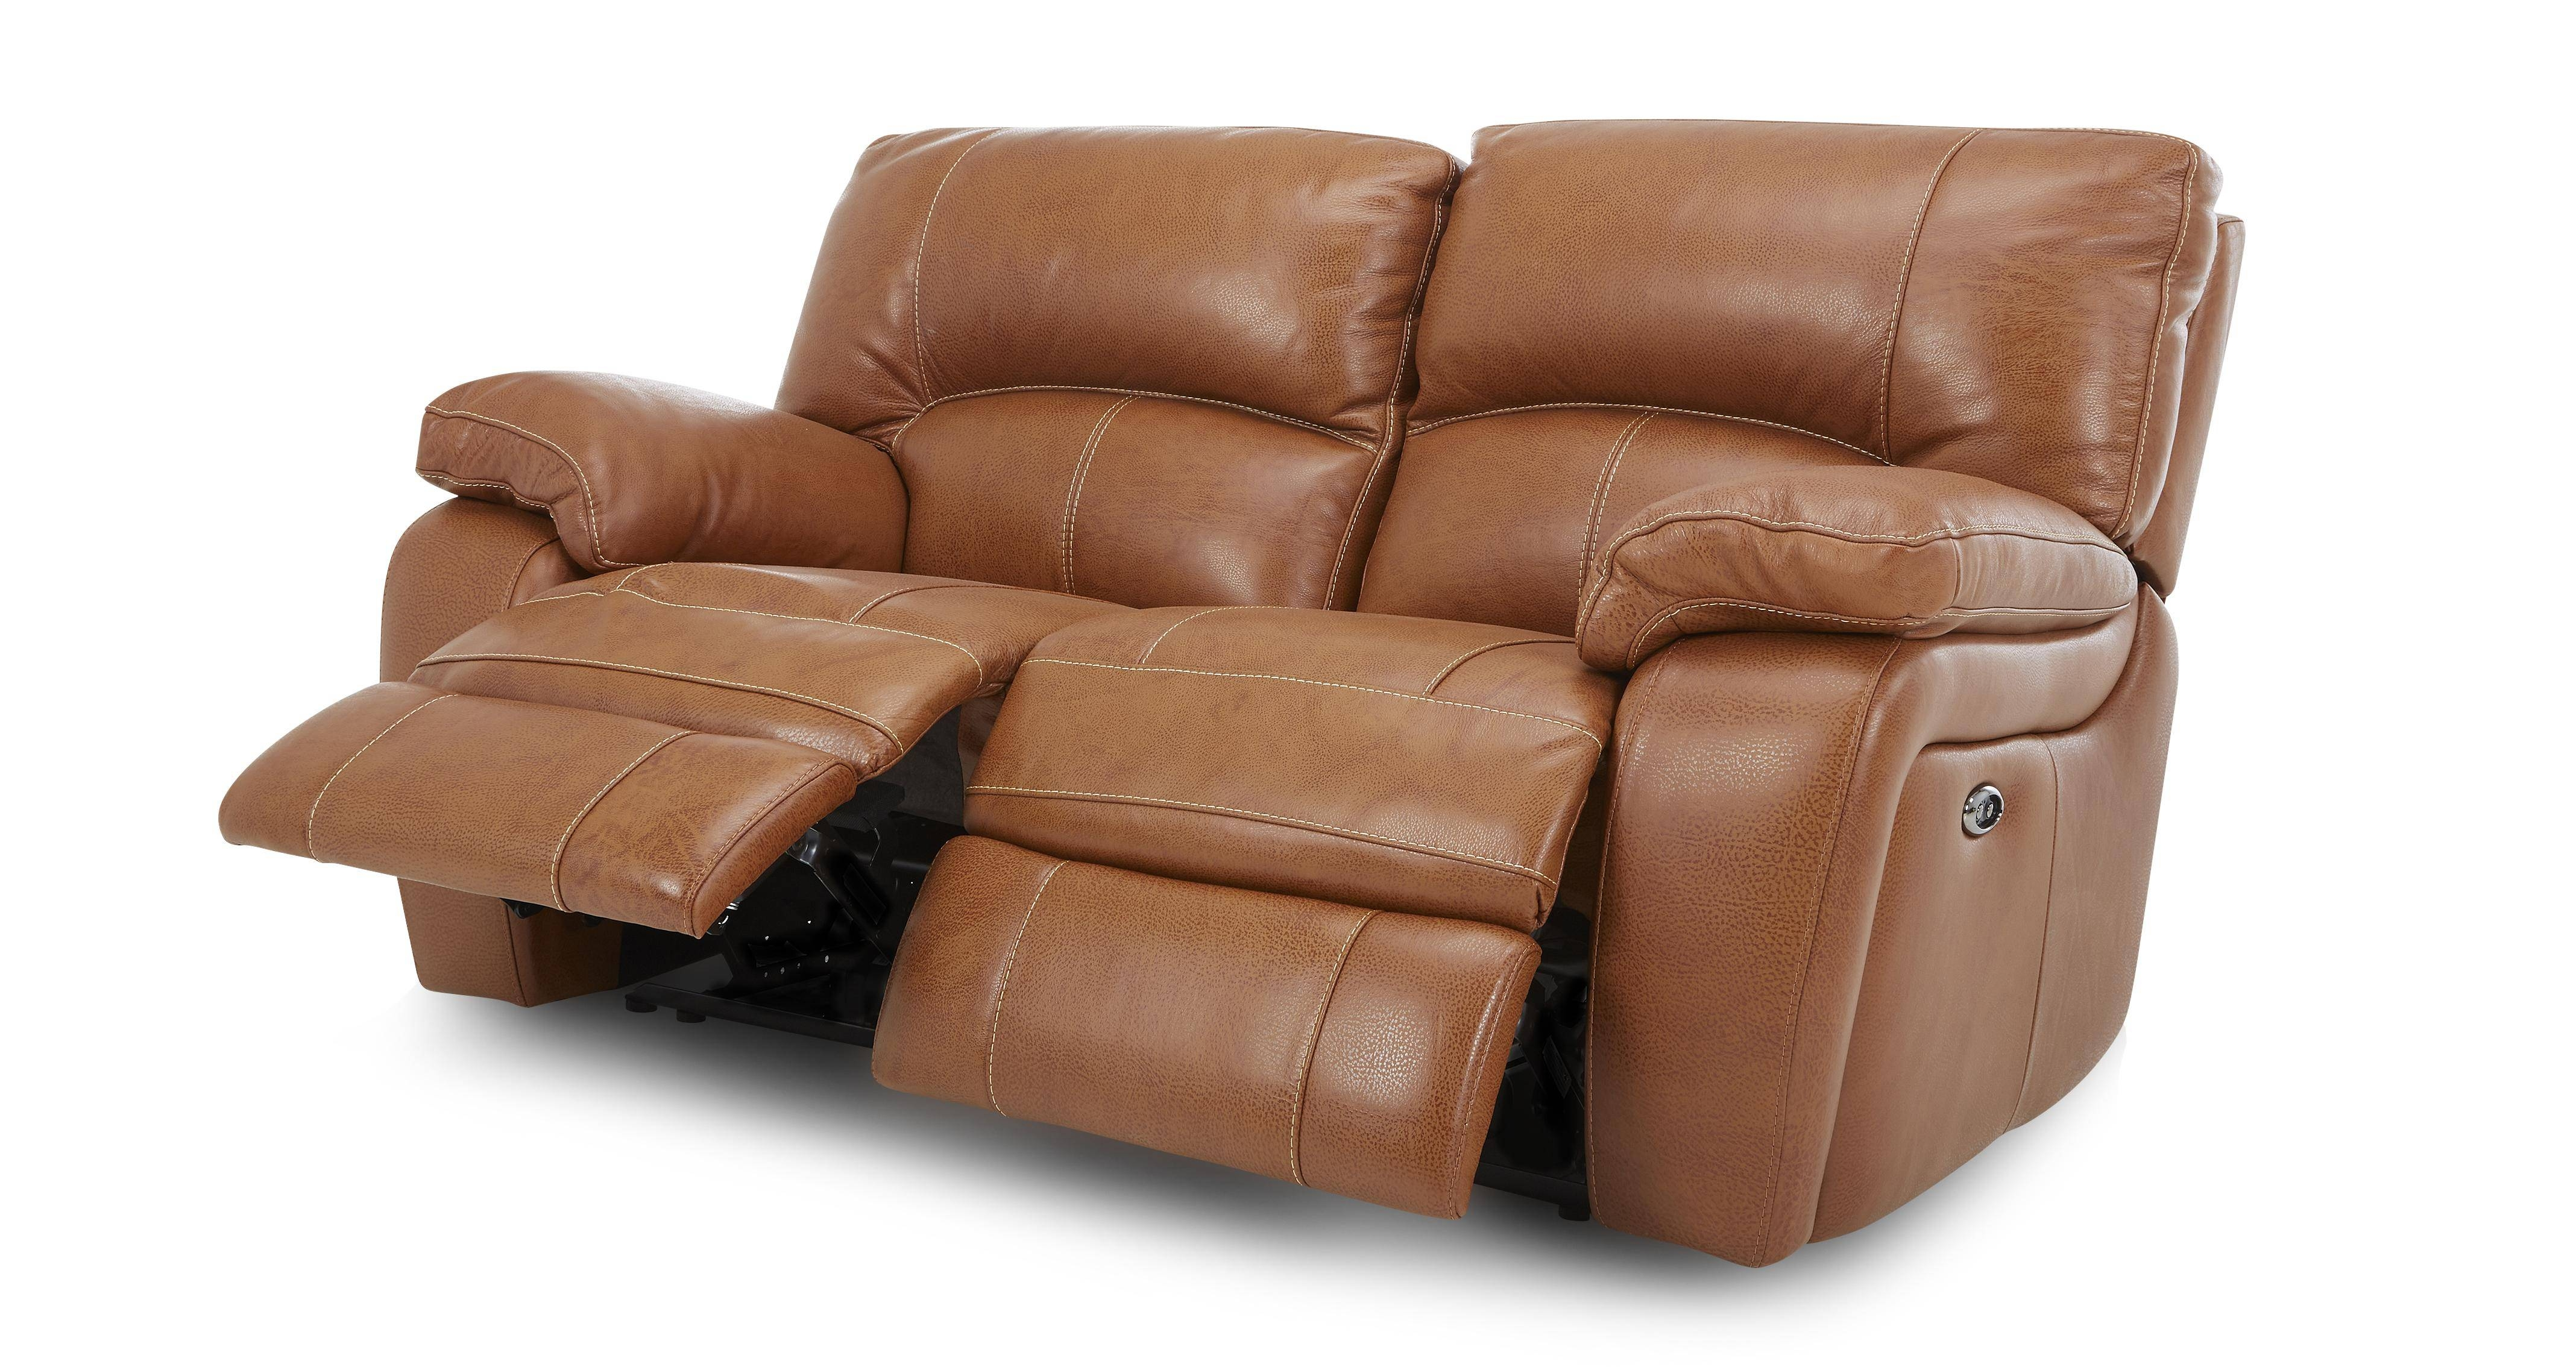 Sofas Center : Hamlin Power Reclining Leather Sofa Tan 42229 inside 2 Seater Recliner Leather Sofas (Image 24 of 30)